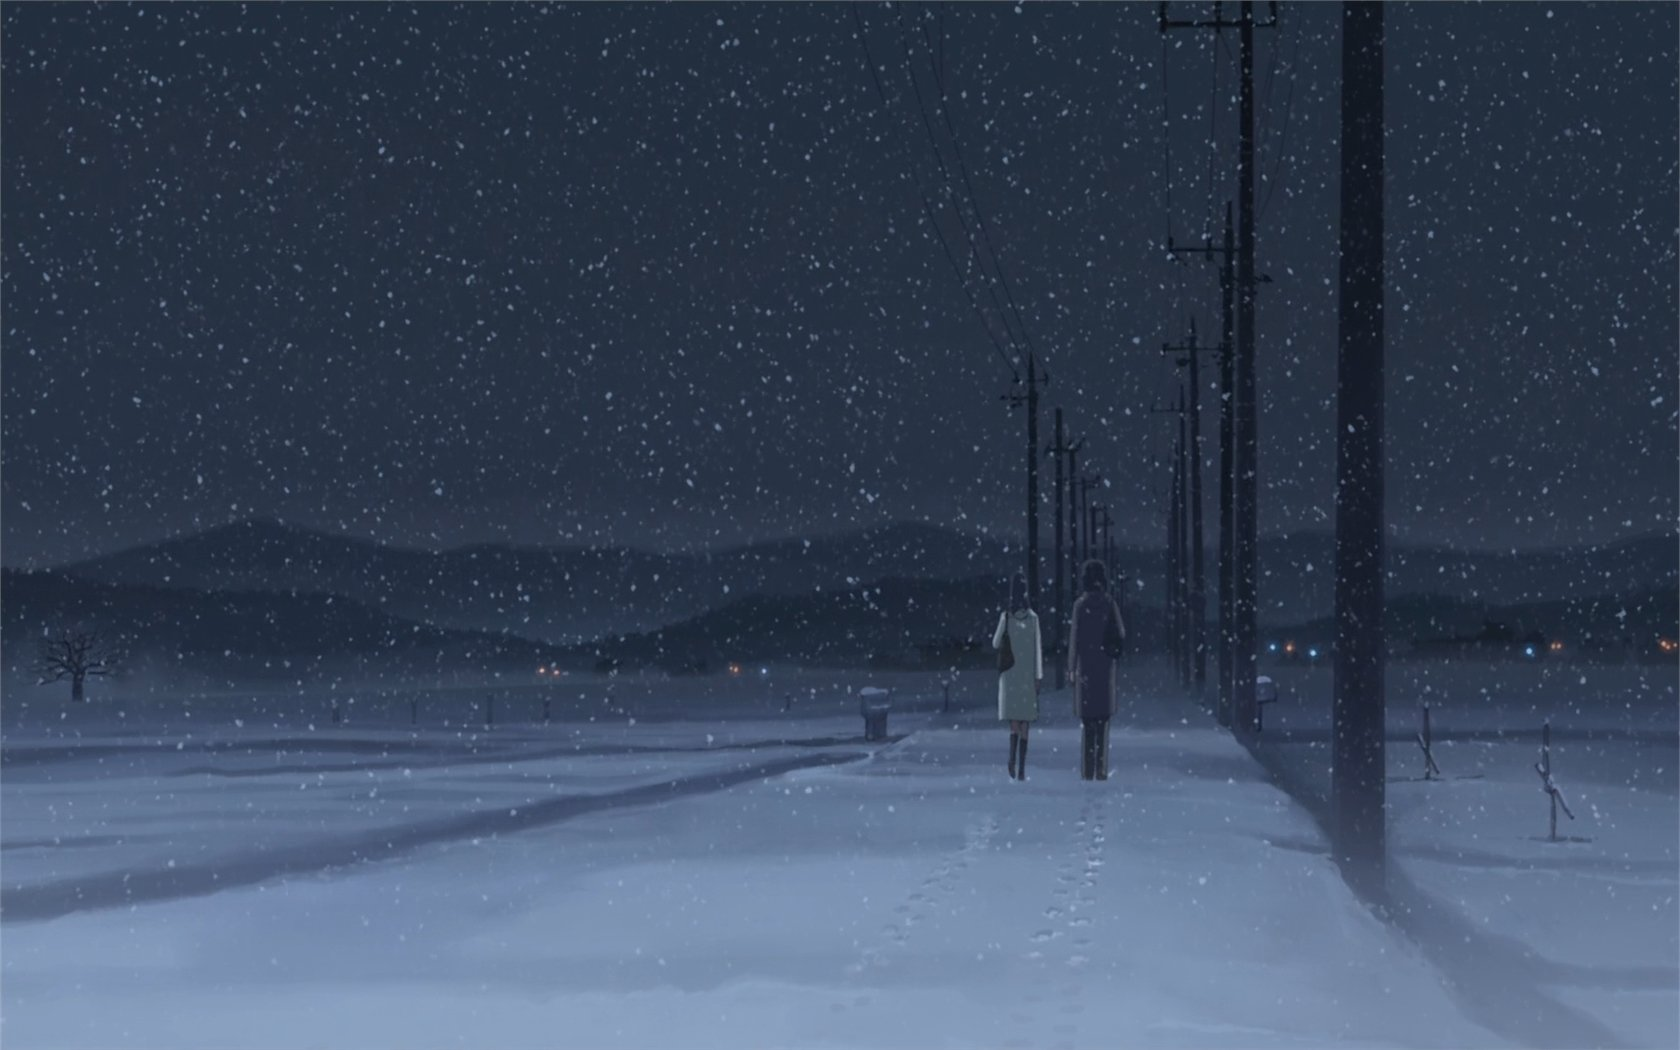 5 Cm Centimeters Per Second Wallpapers Hd For Desktop Backgrounds